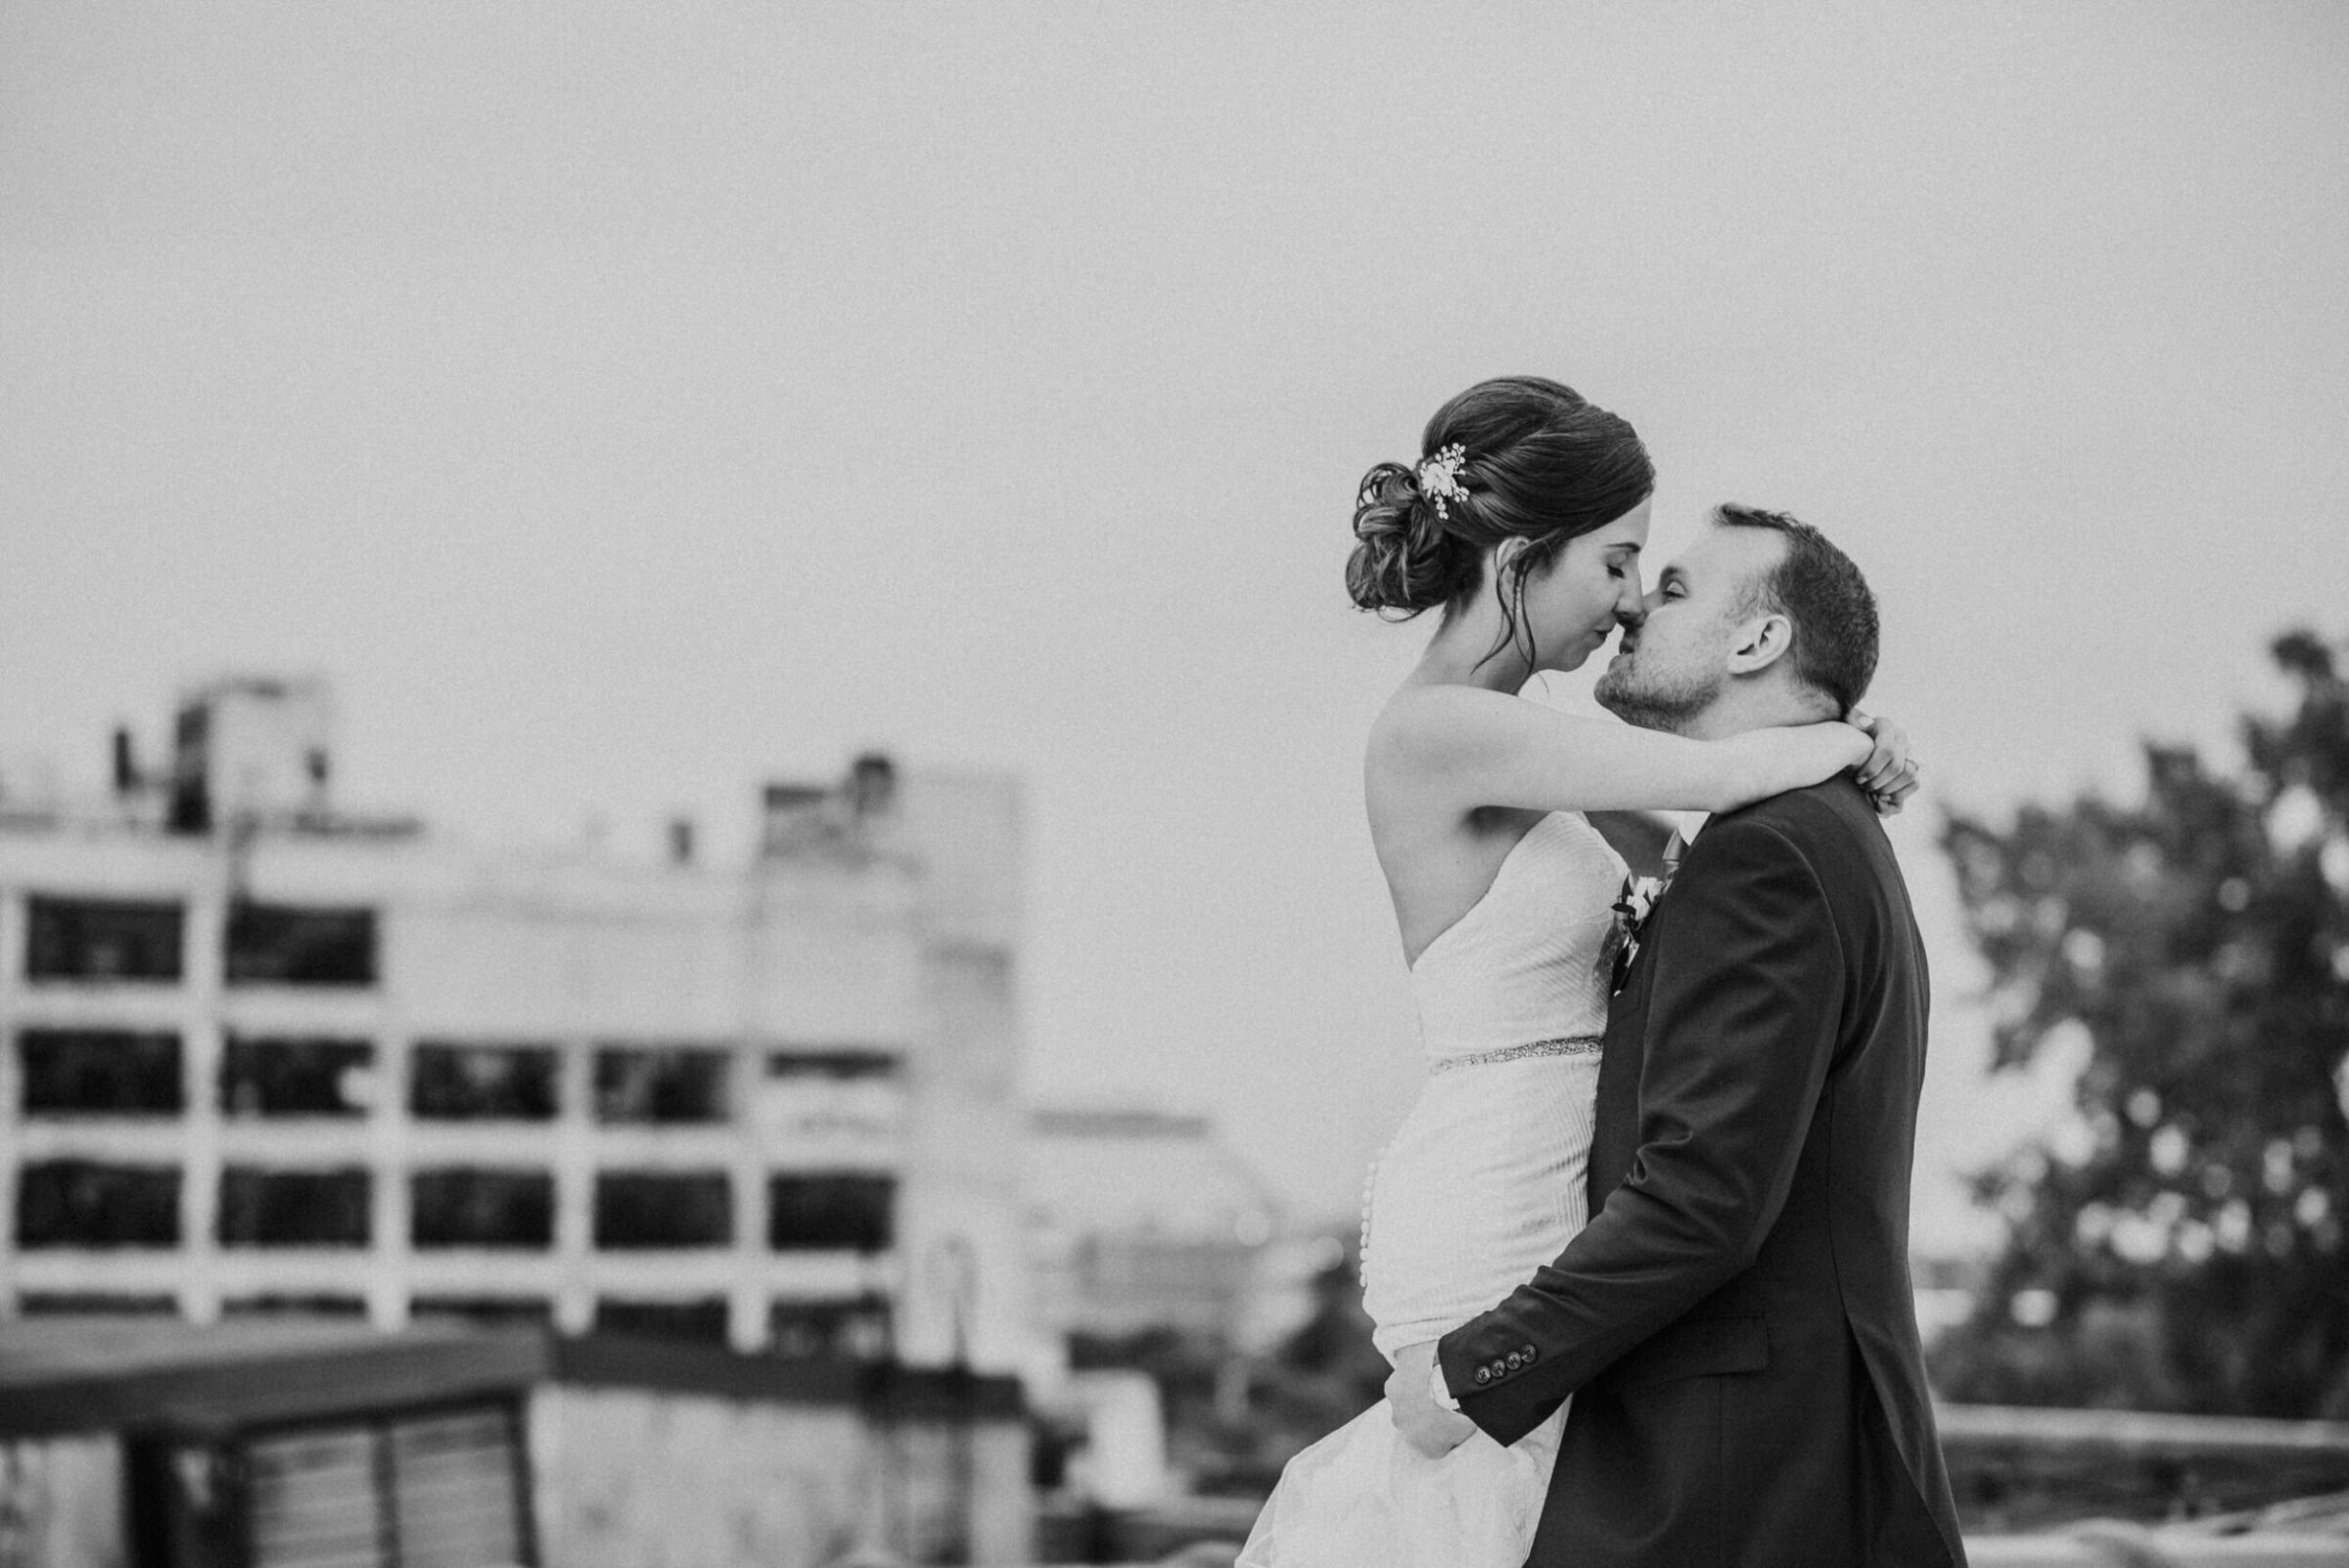 Romantic wedding photos at Detroit Ford Piquette plant | Piquette plant wedding | Captured Couture, LLC